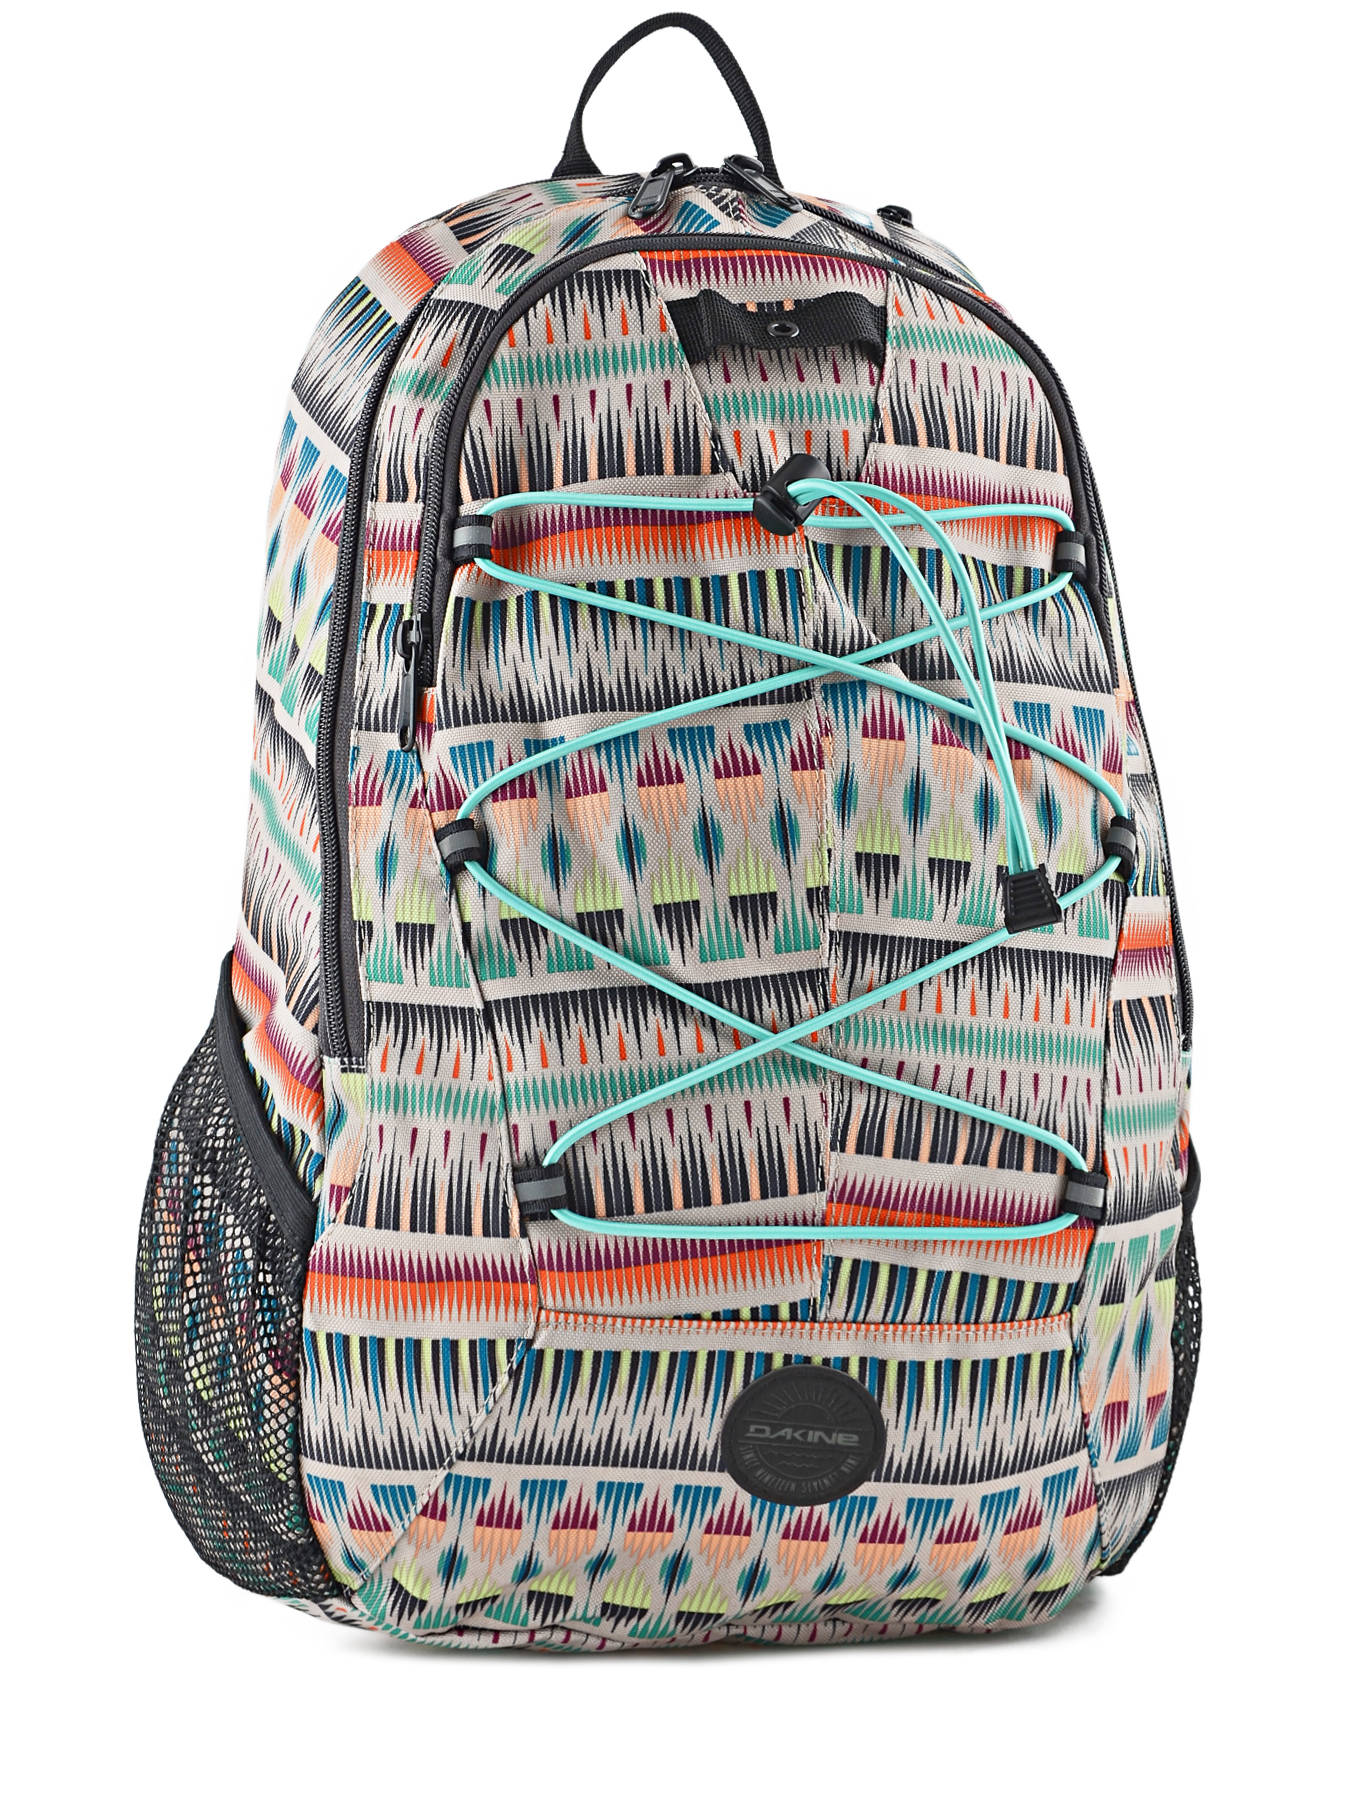 8fa13faa337be ... Backpack 1 Compartment Dakine Multicolor girl packs 8210-072 ...